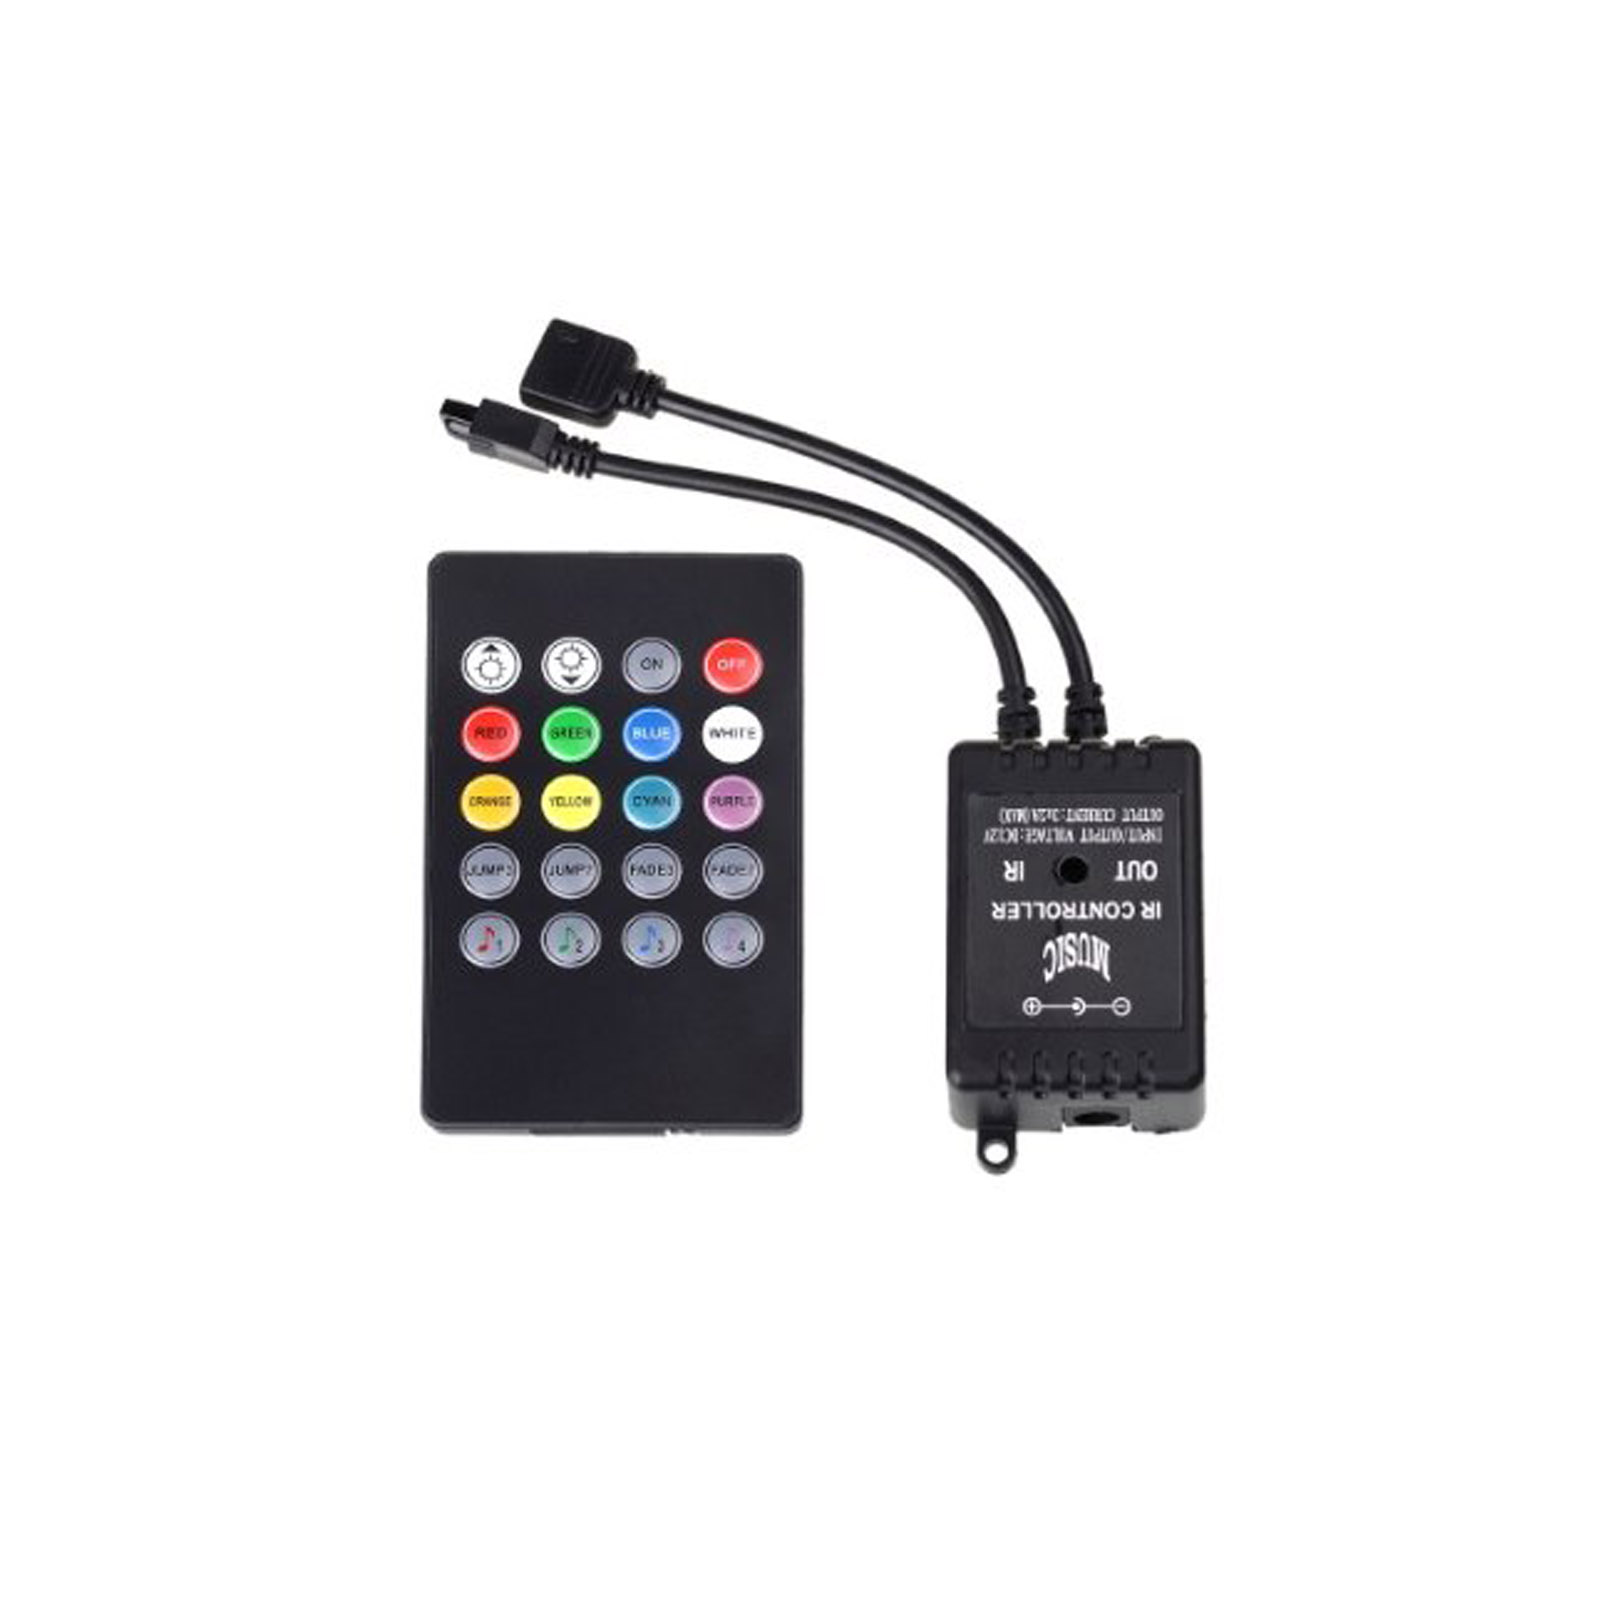 led musik controller dimmer fernbedienung f r rgb led strip streifen 12v remote ebay. Black Bedroom Furniture Sets. Home Design Ideas